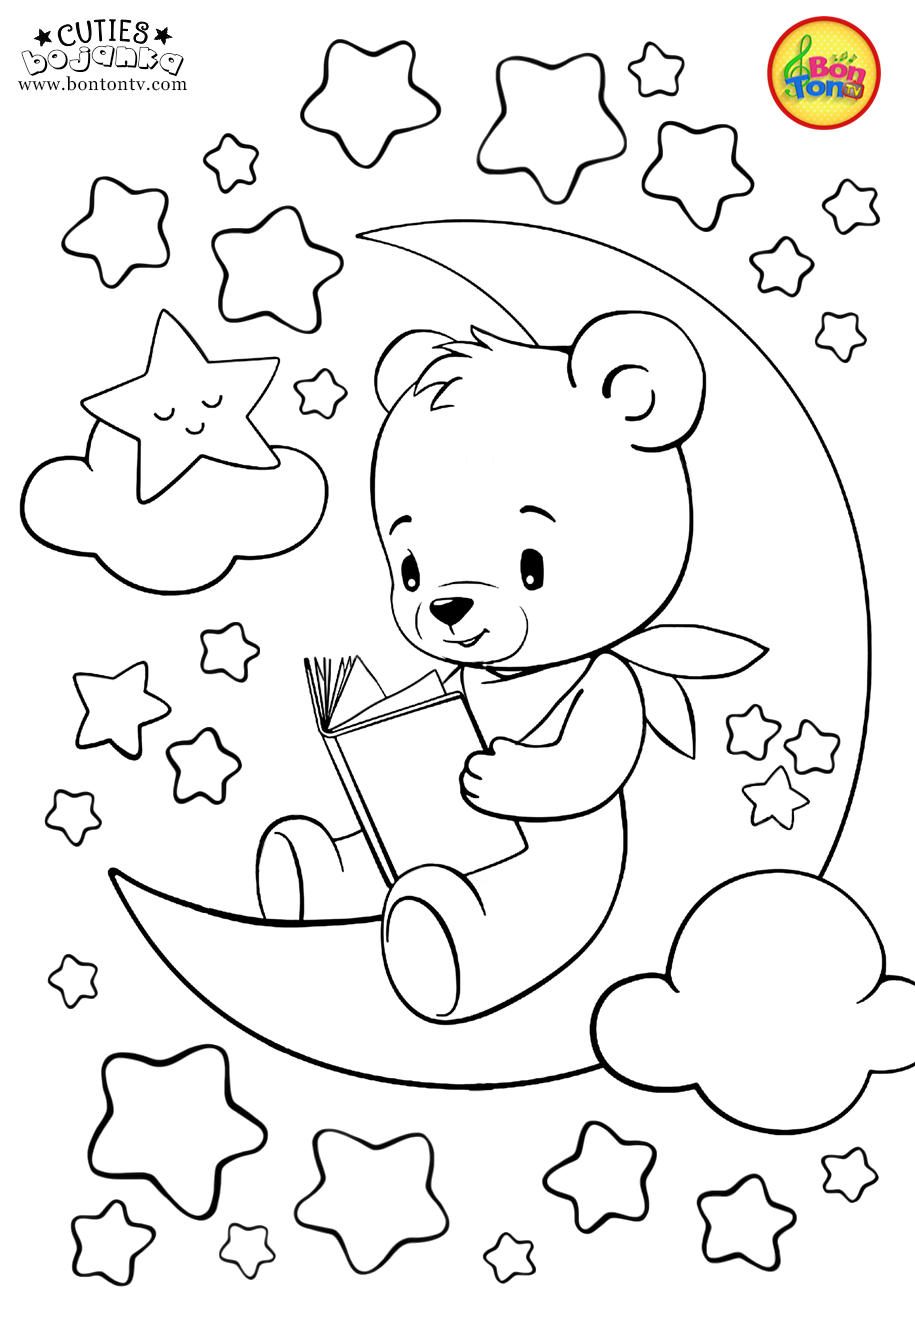 - Cuties Coloring Pages For Kids - Free Preschool Printables